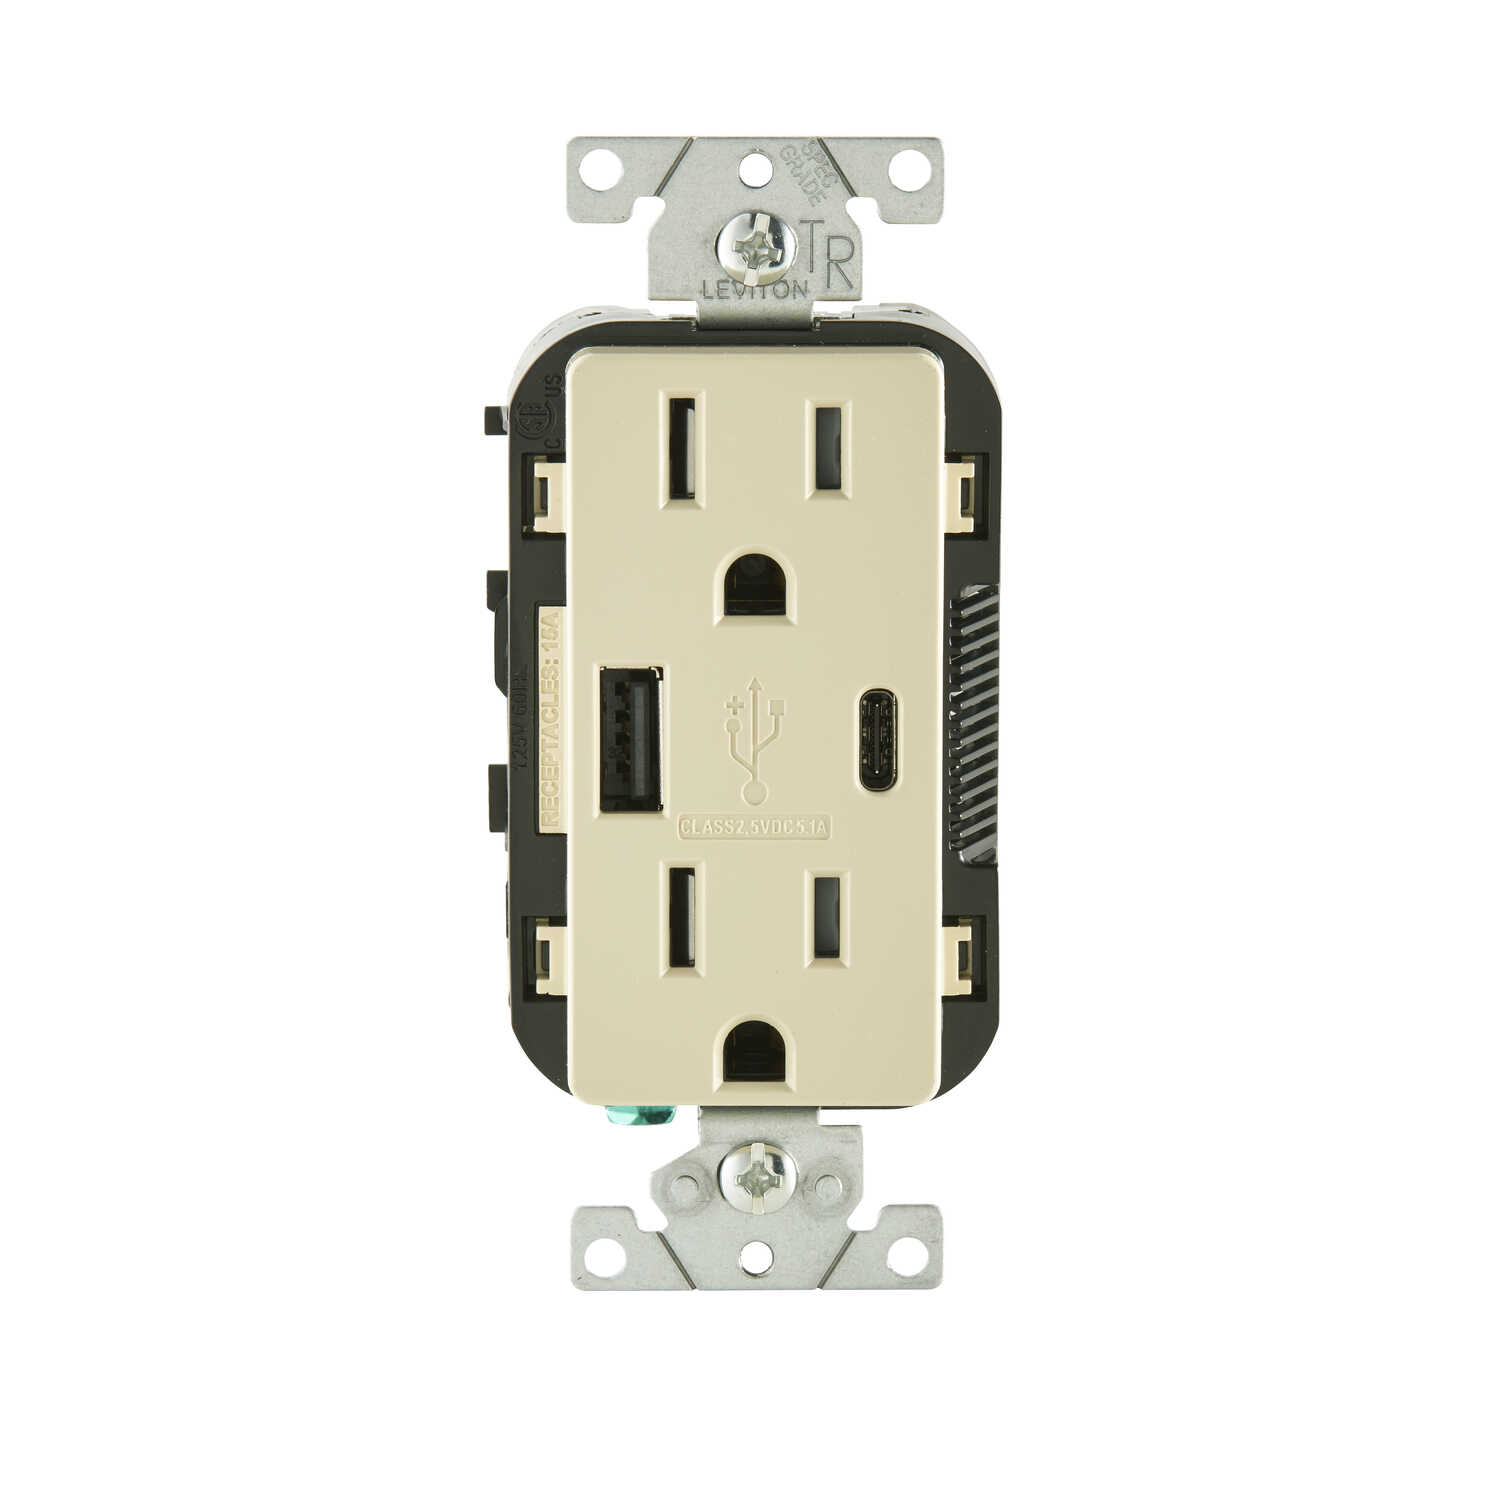 Leviton  Decora  15 amps 125 volt Ivory  Outlet and USB Charger  5-15R  1 pk